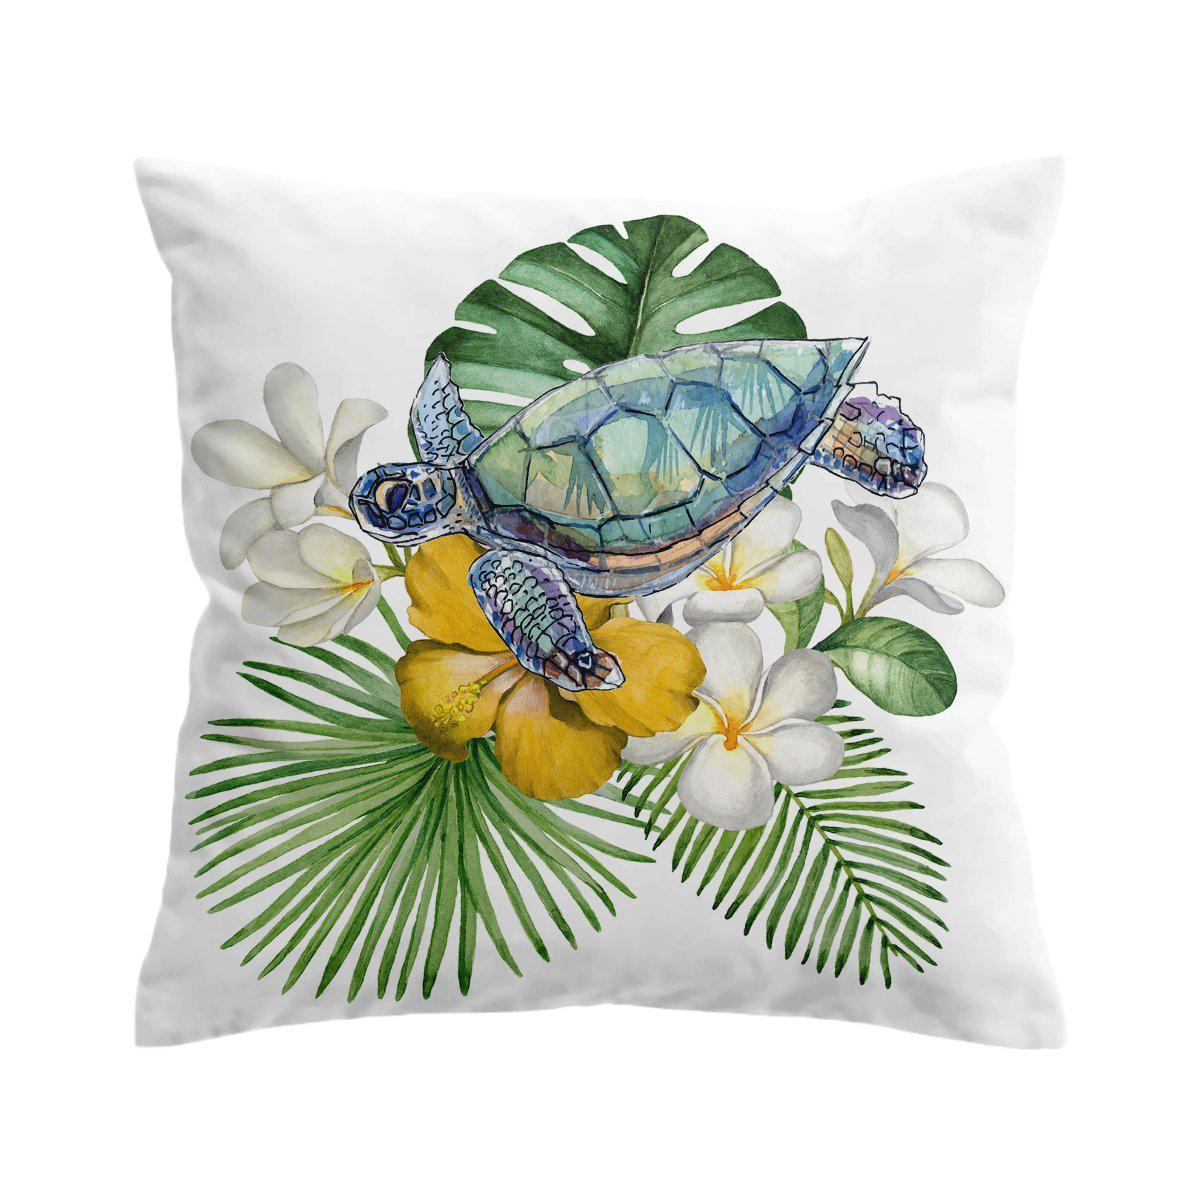 Sea Turtle and Flowers Pillow Cover-Coastal Passion